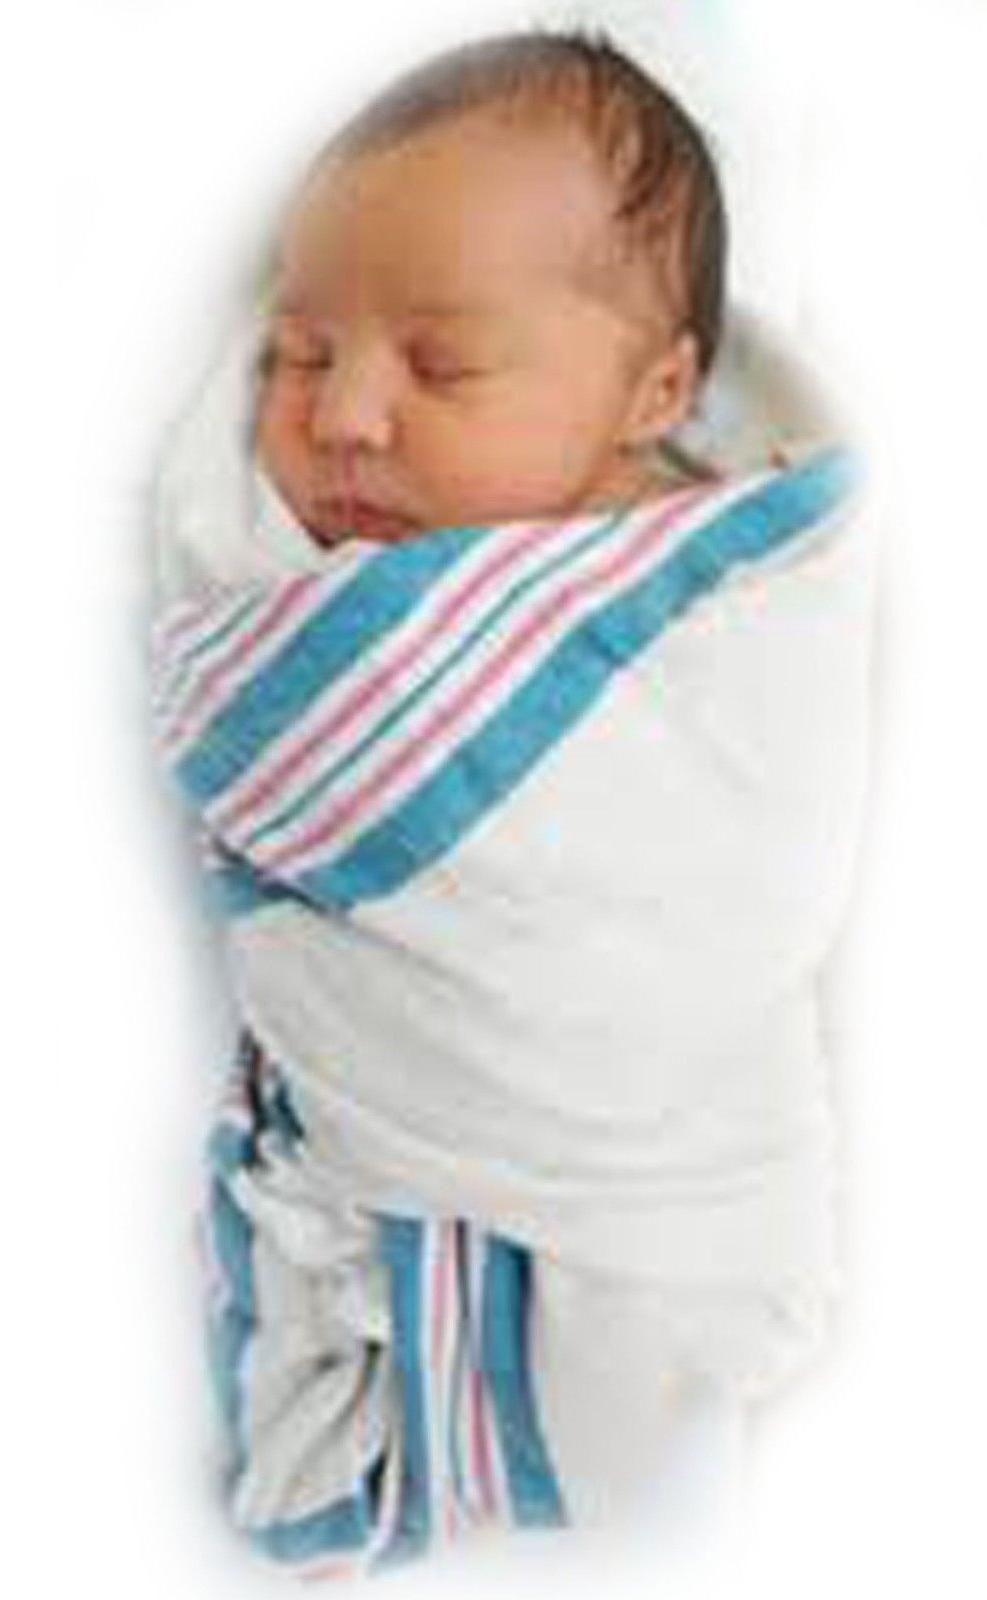 12 Baby Infant Receiving Hospital Blankets